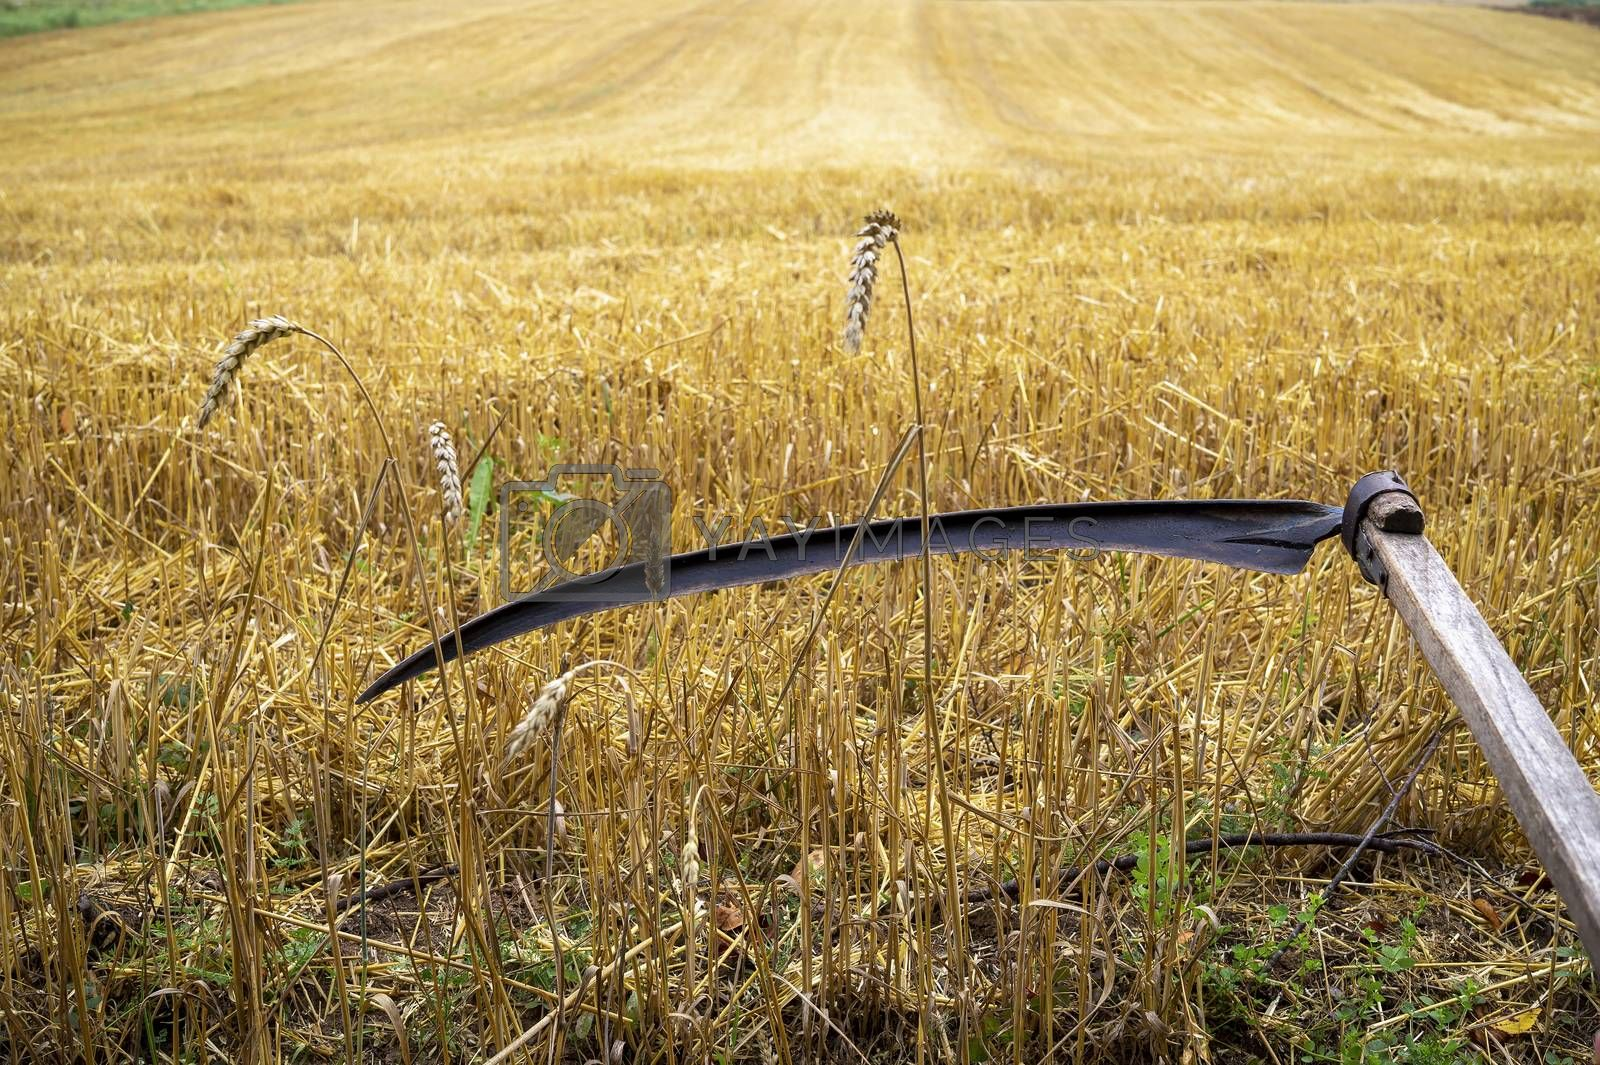 Rustic scythe in a harvested field of wheat with stalk stubble in an agricultural landscape